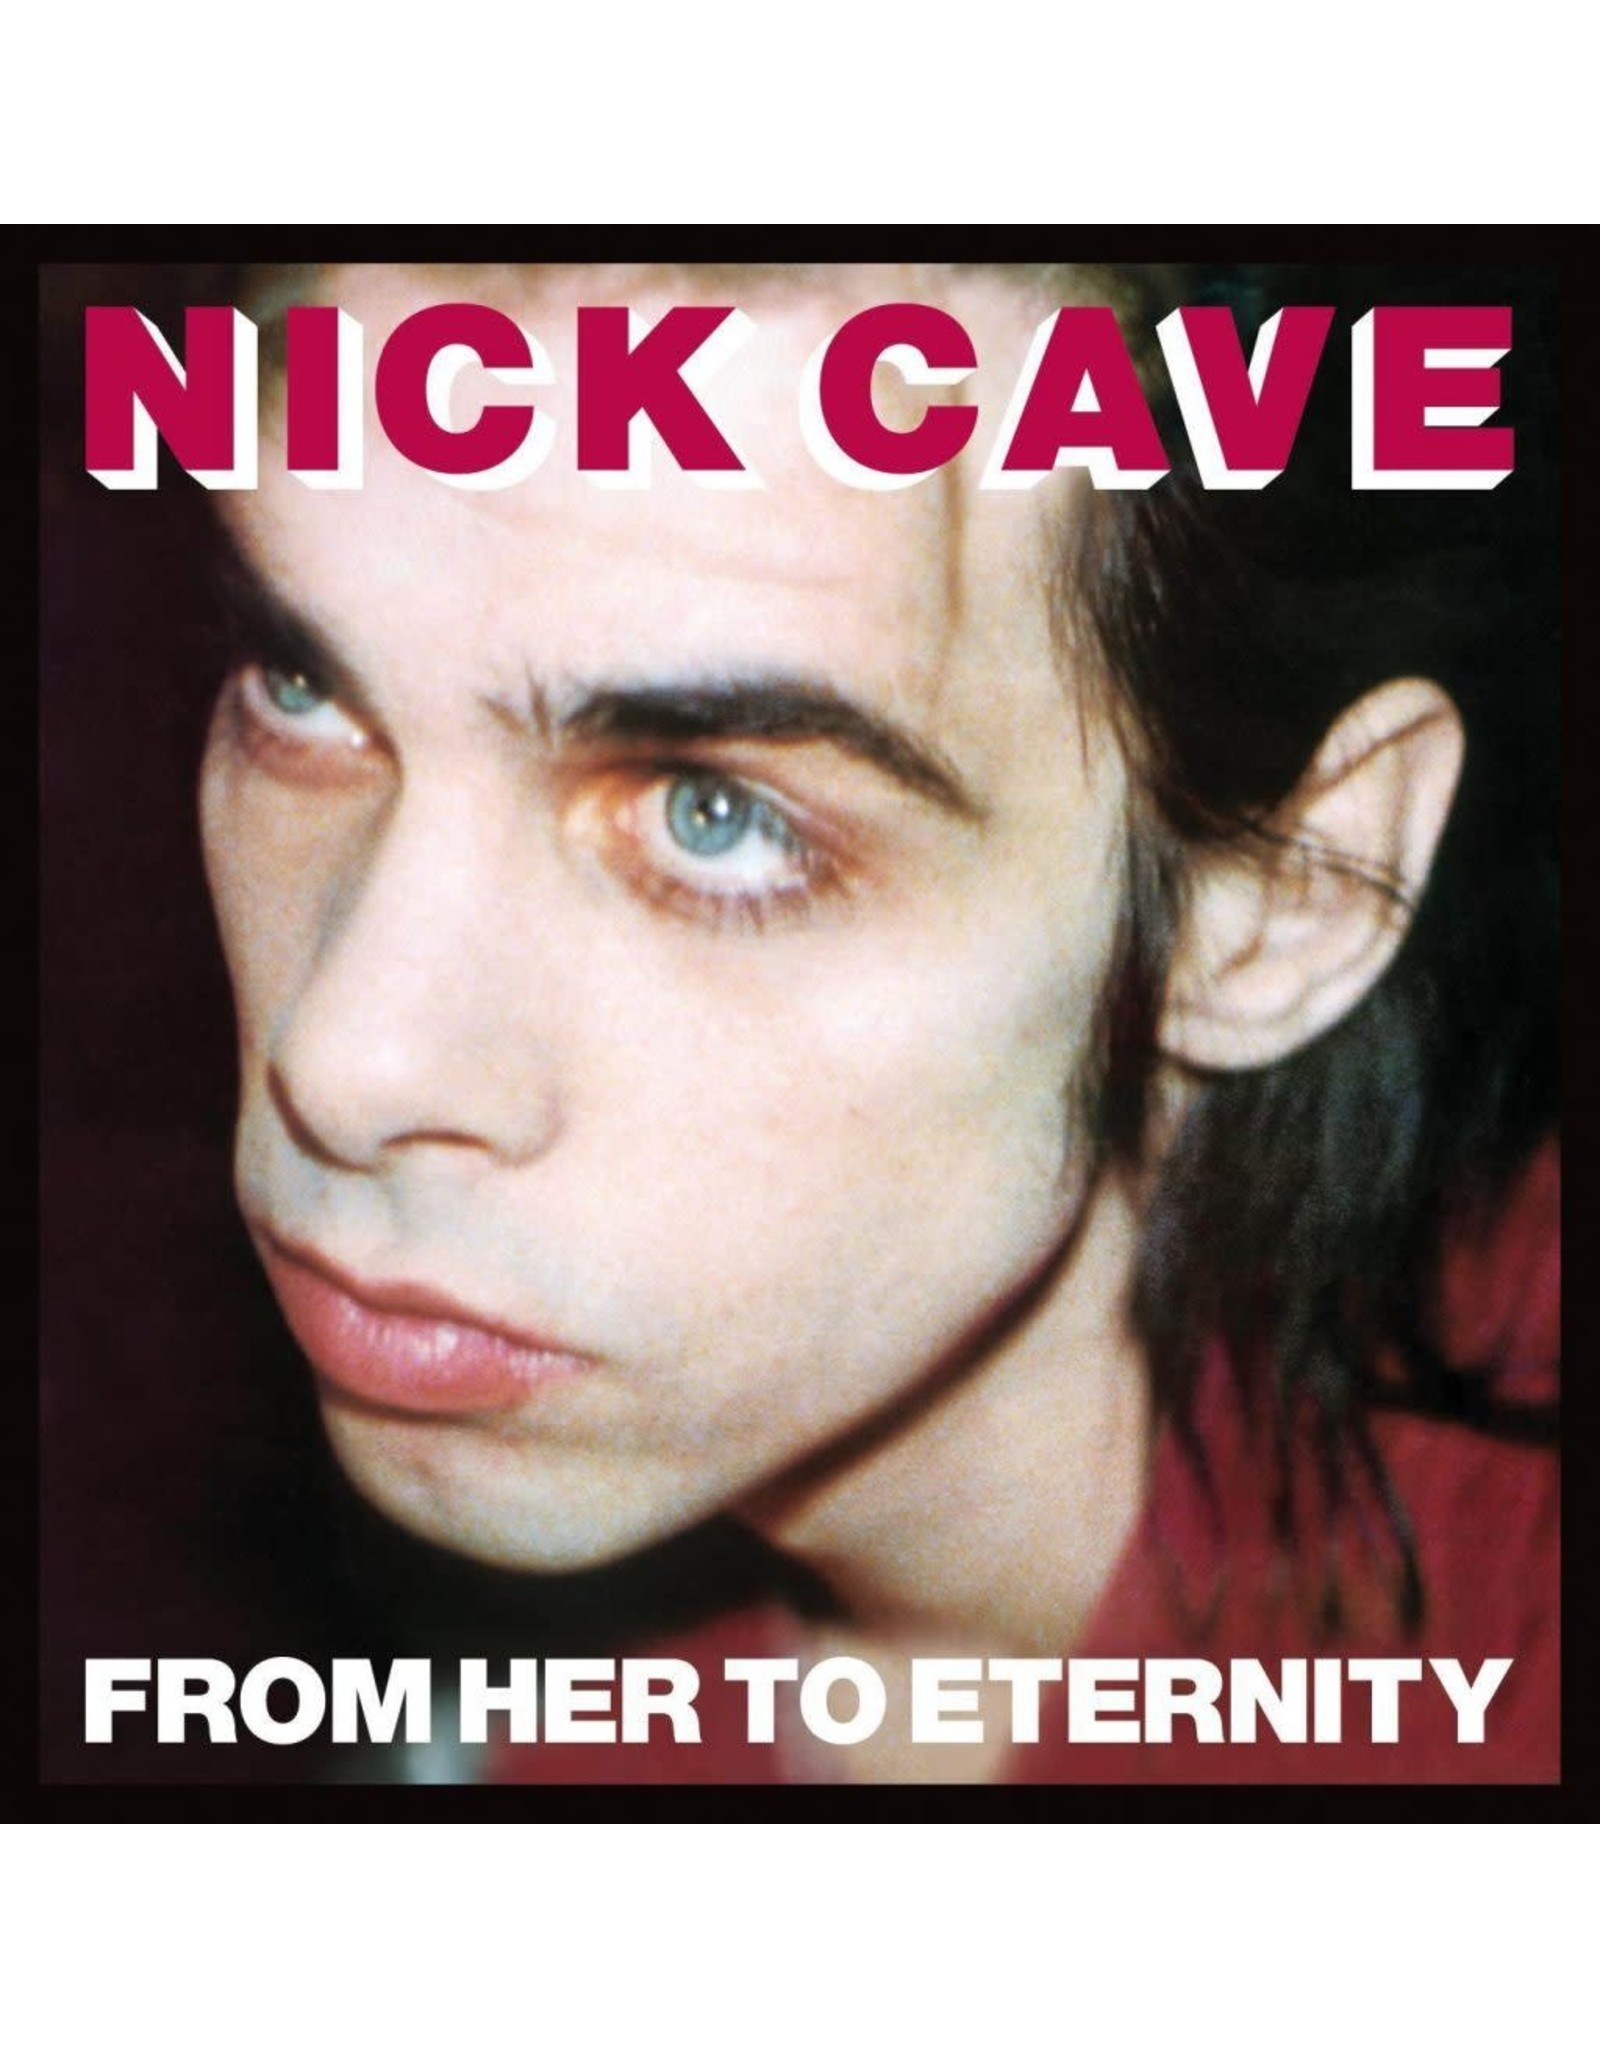 Cave, Nick - From Her To Eternity  LP